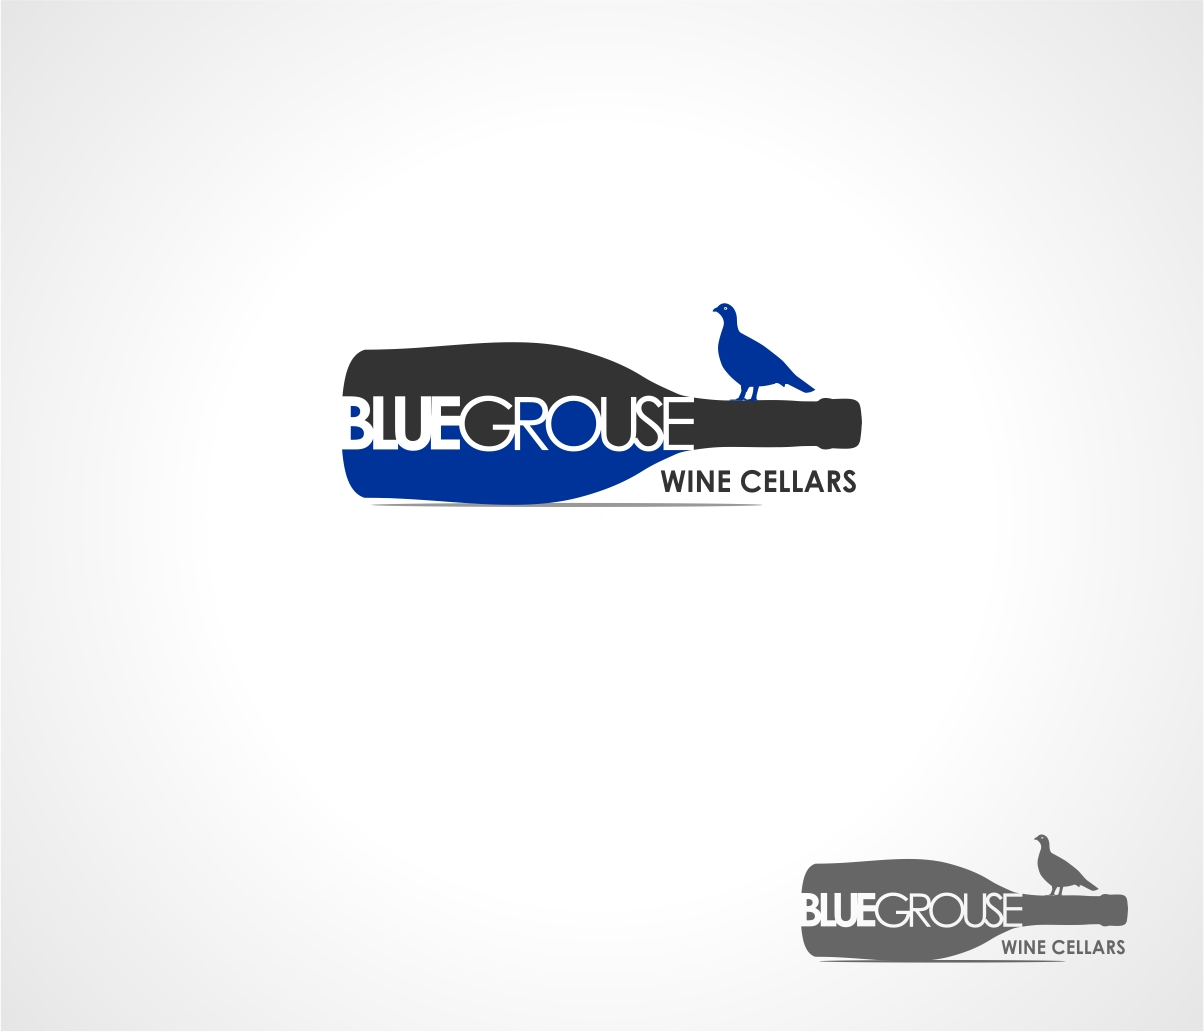 Logo Design by haidu - Entry No. 120 in the Logo Design Contest Creative Logo Design for Blue Grouse Wine Cellars.